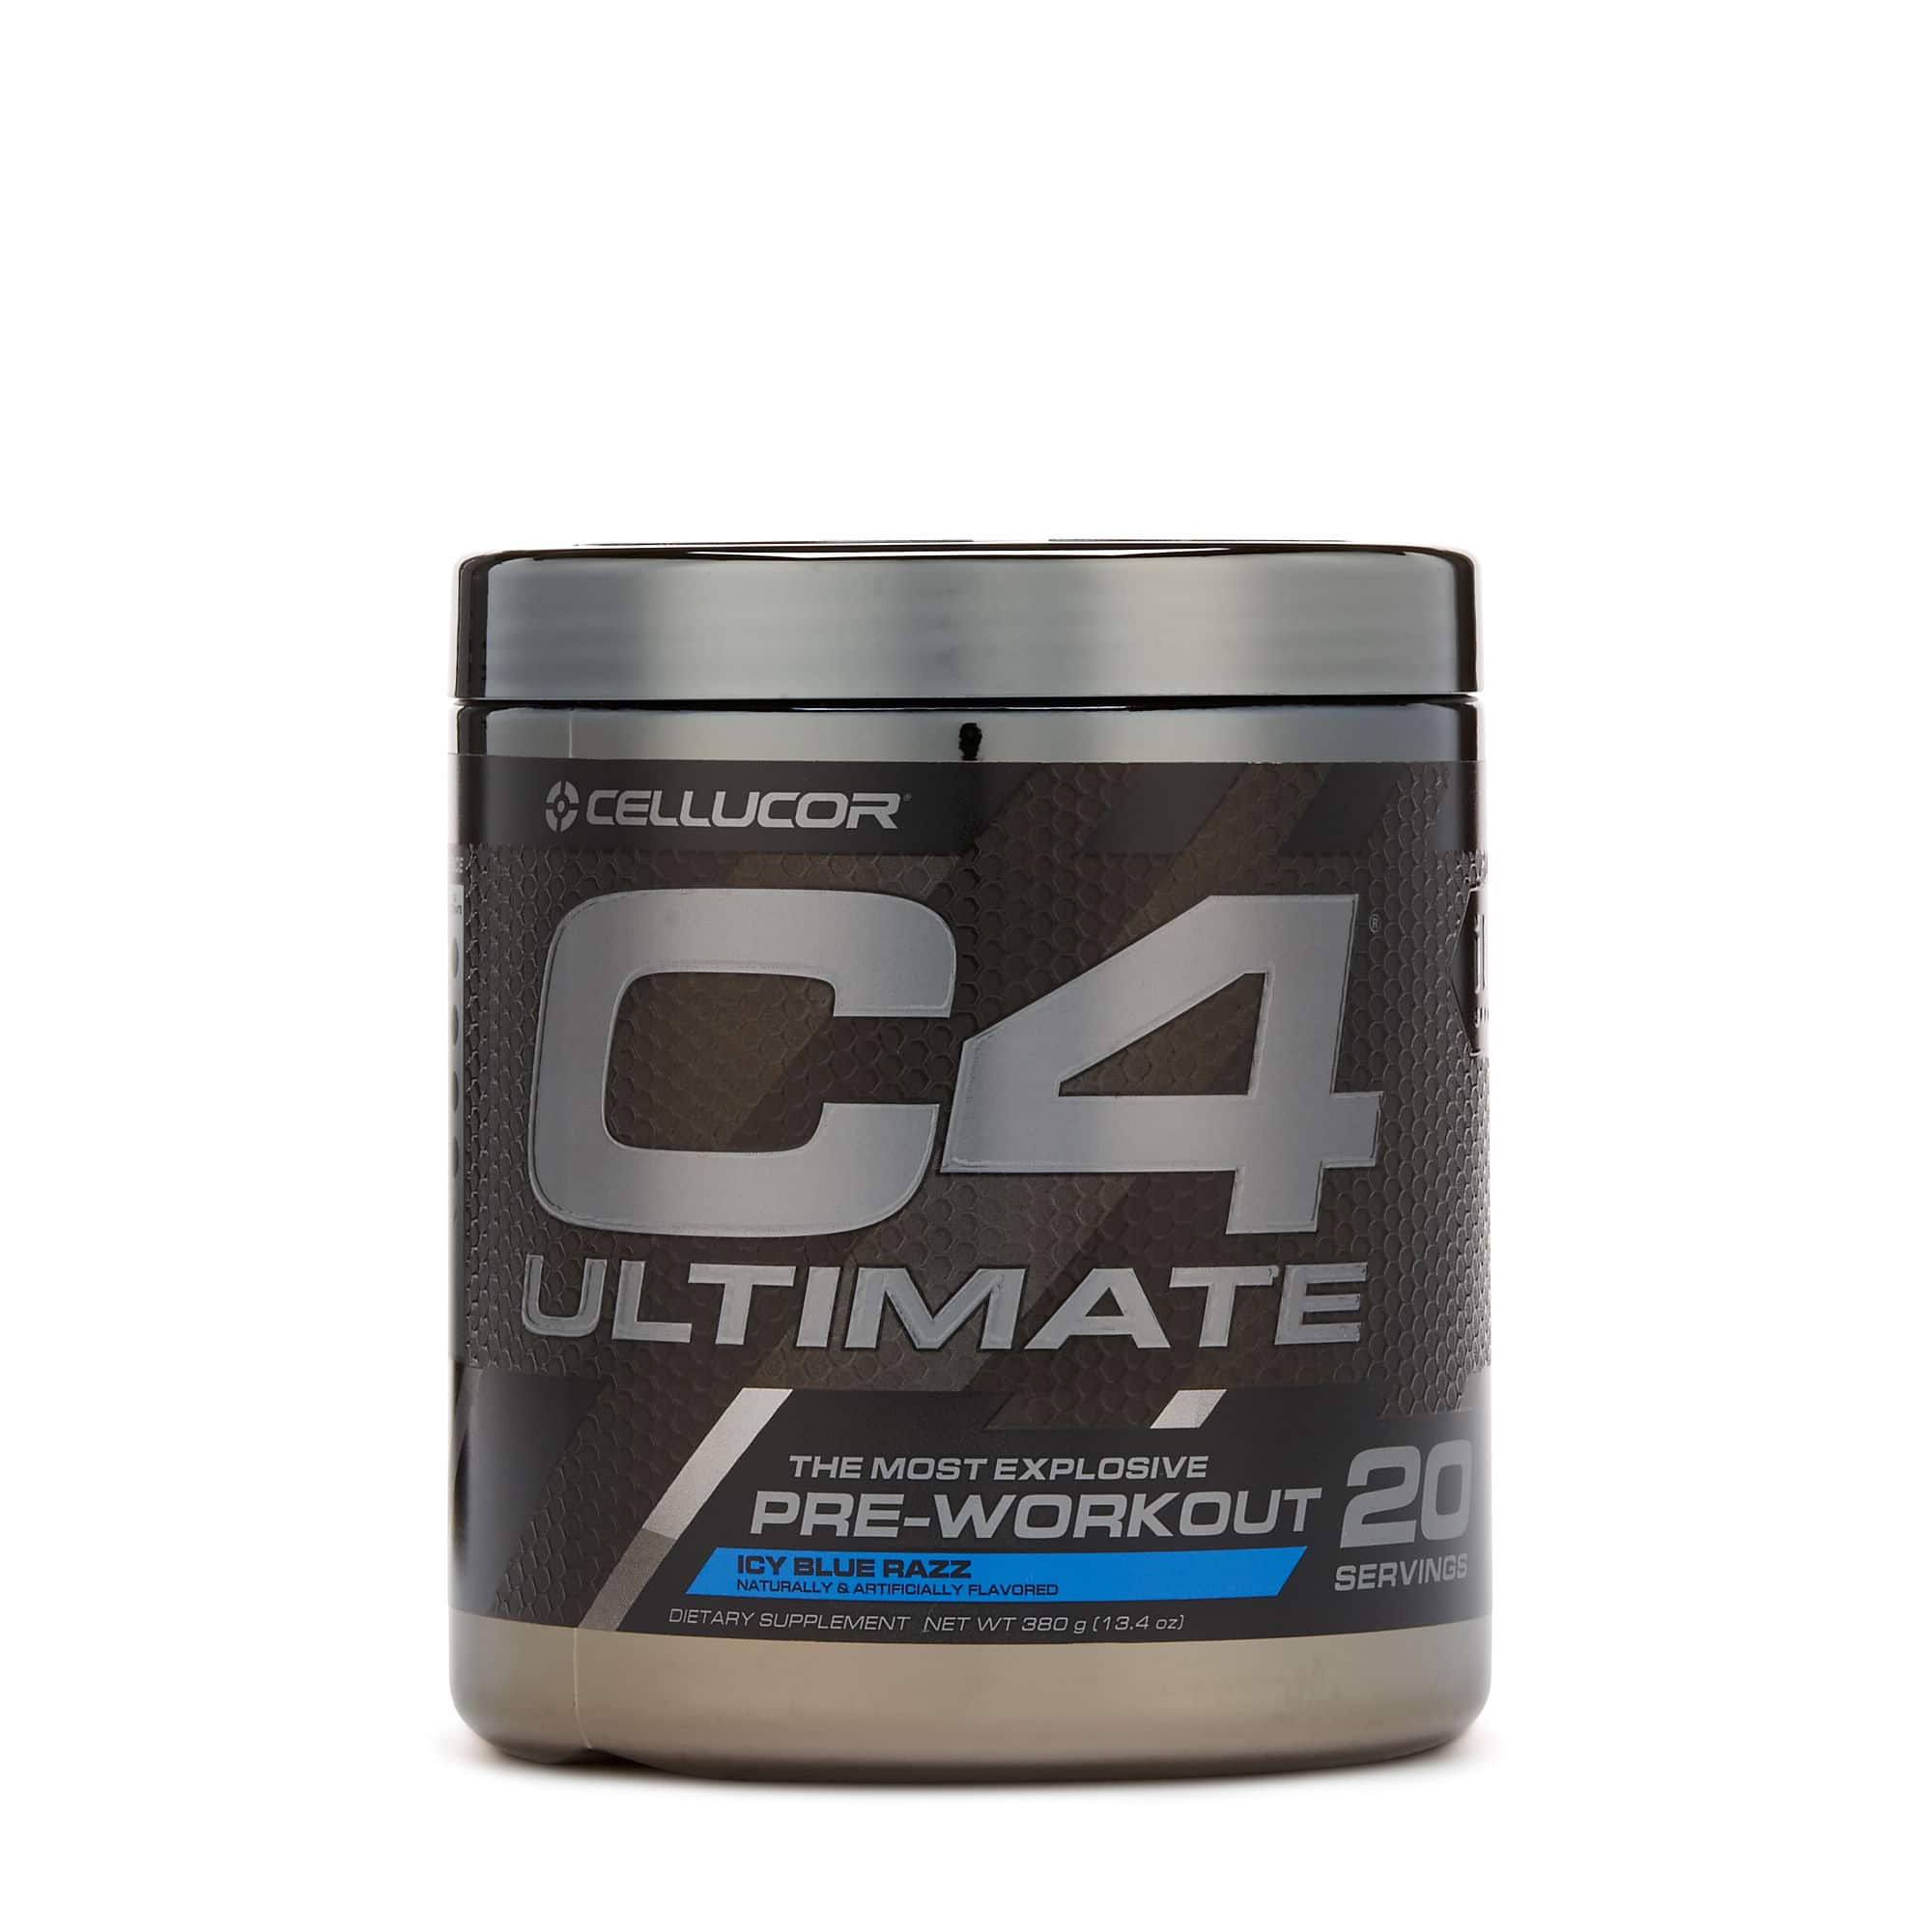 Cellucor® C4® Ultimate Pre-workout 3 for $54.98